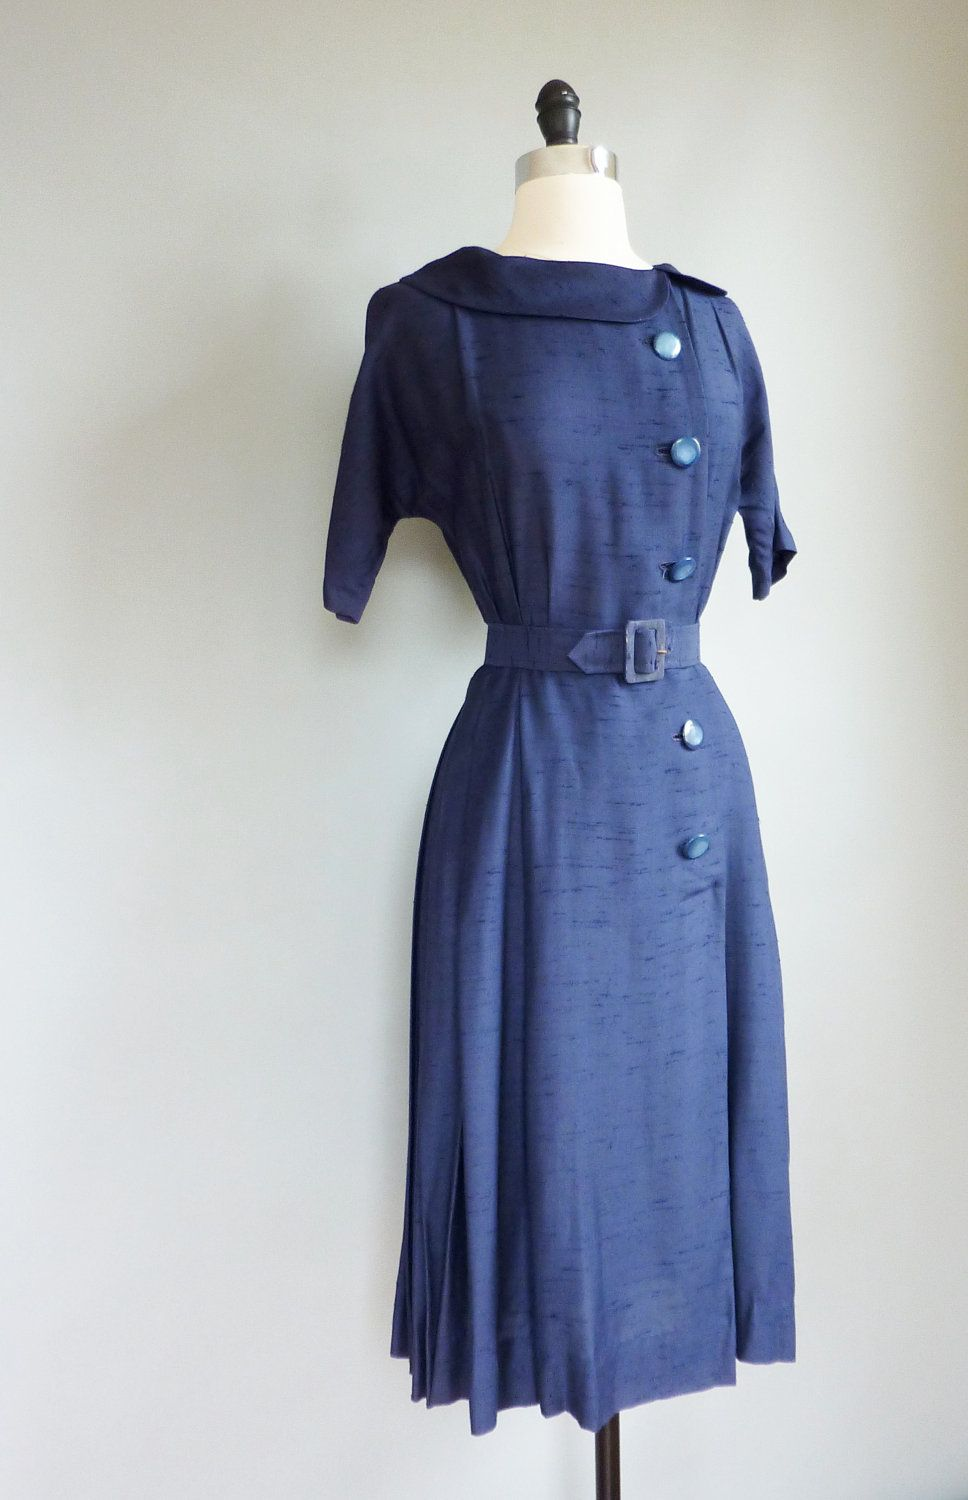 1940s vintage dress. Buttoned up coats and dresses were very popular ...